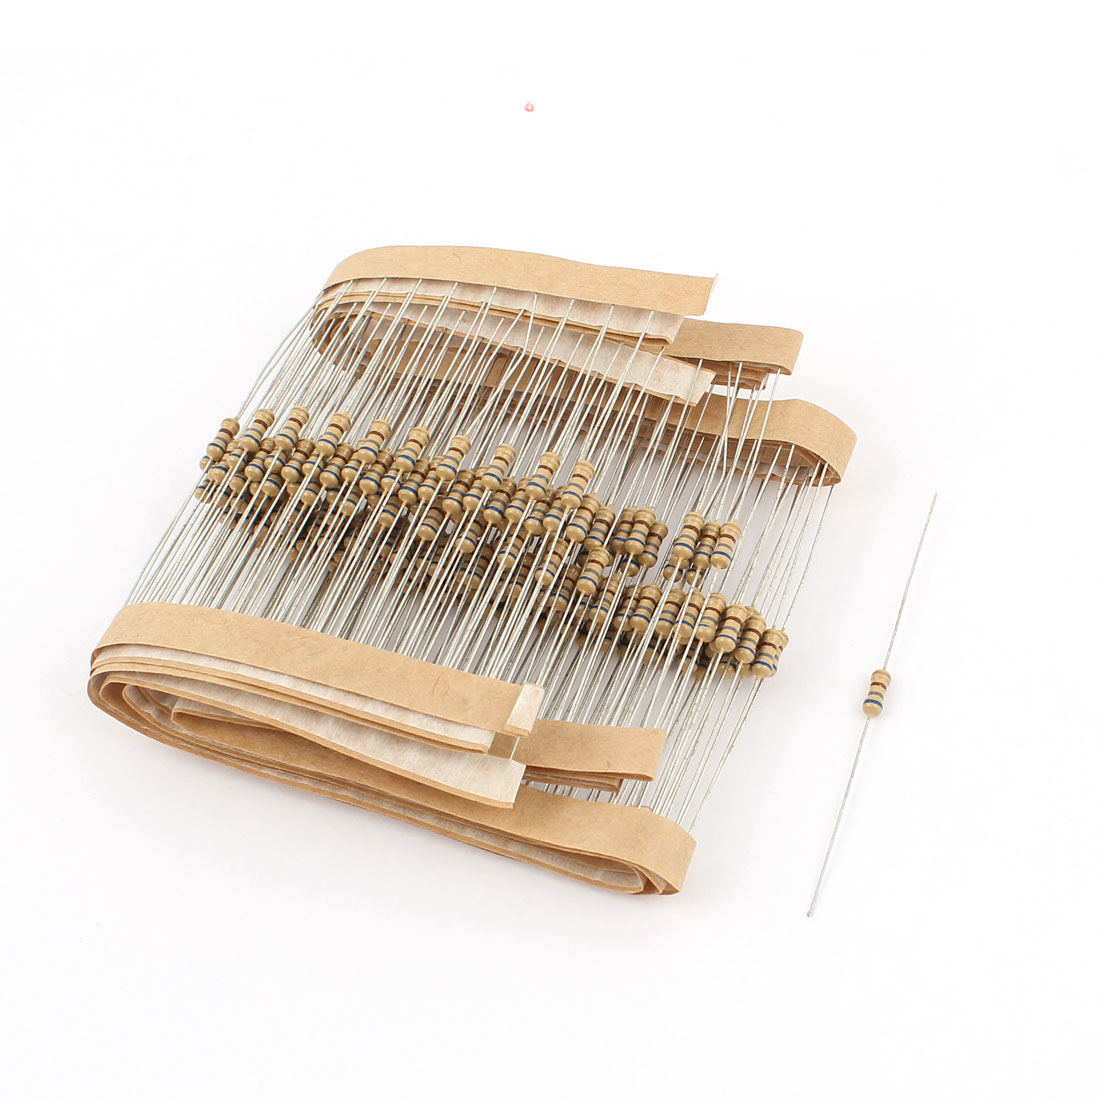 200pcs 1/4 Watt 670 Ohm Resistance Electrical Carbon Film Resistor